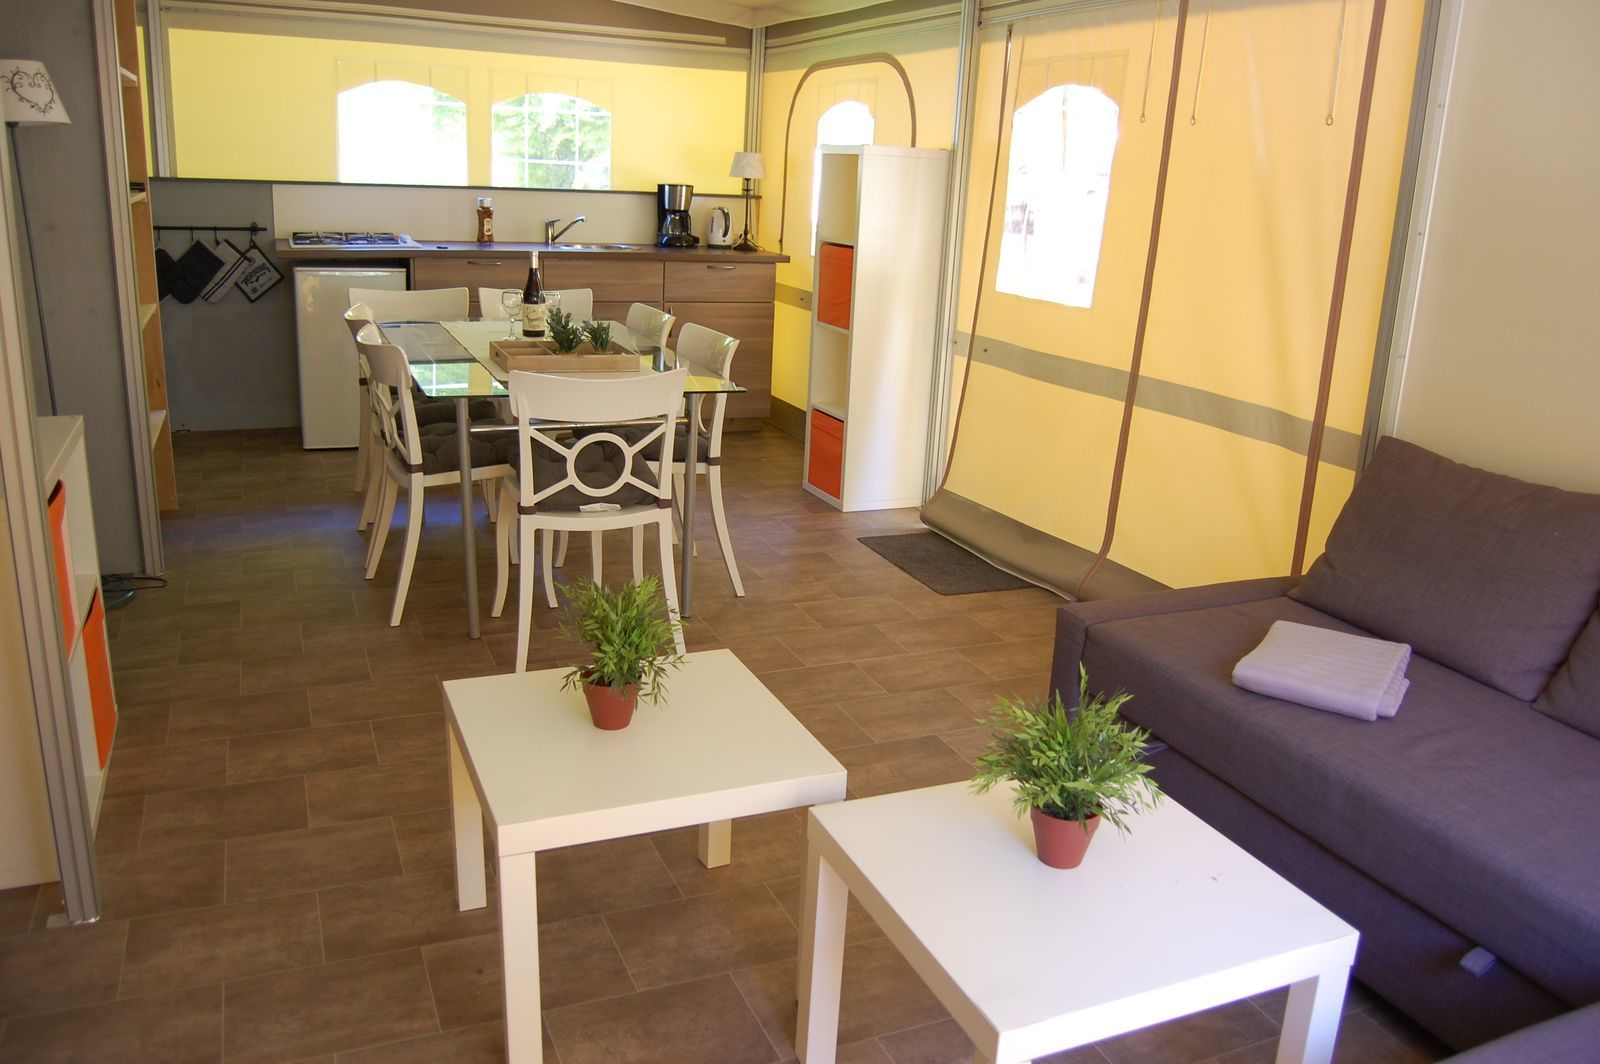 Glampingtent Cahors